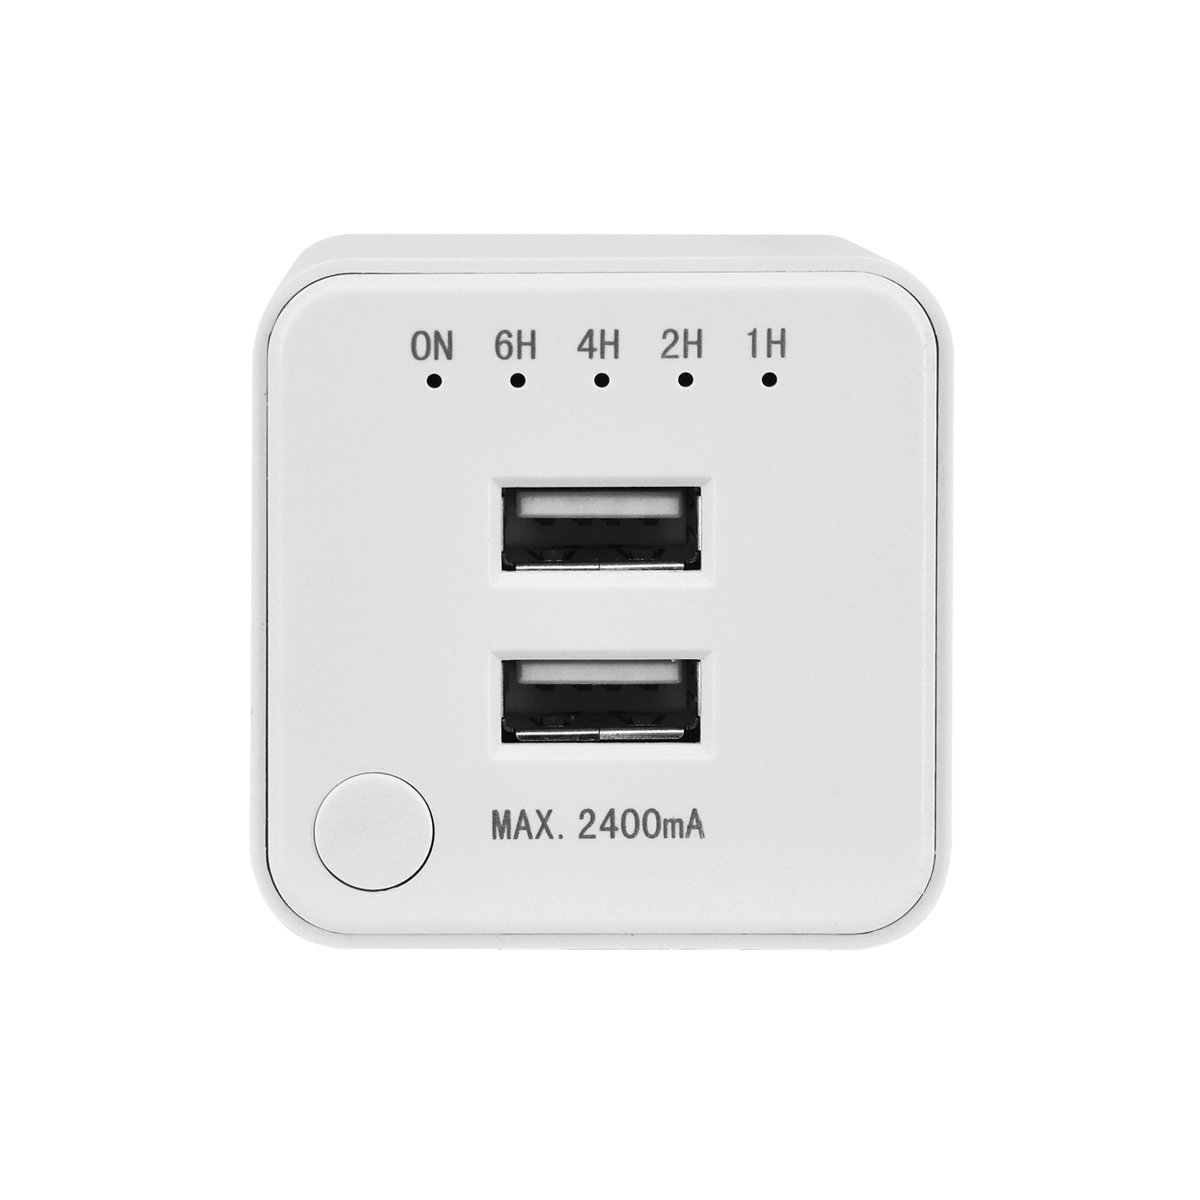 Link2Home EM-1605 Dual Usb Port Wall Charger with Timer, White